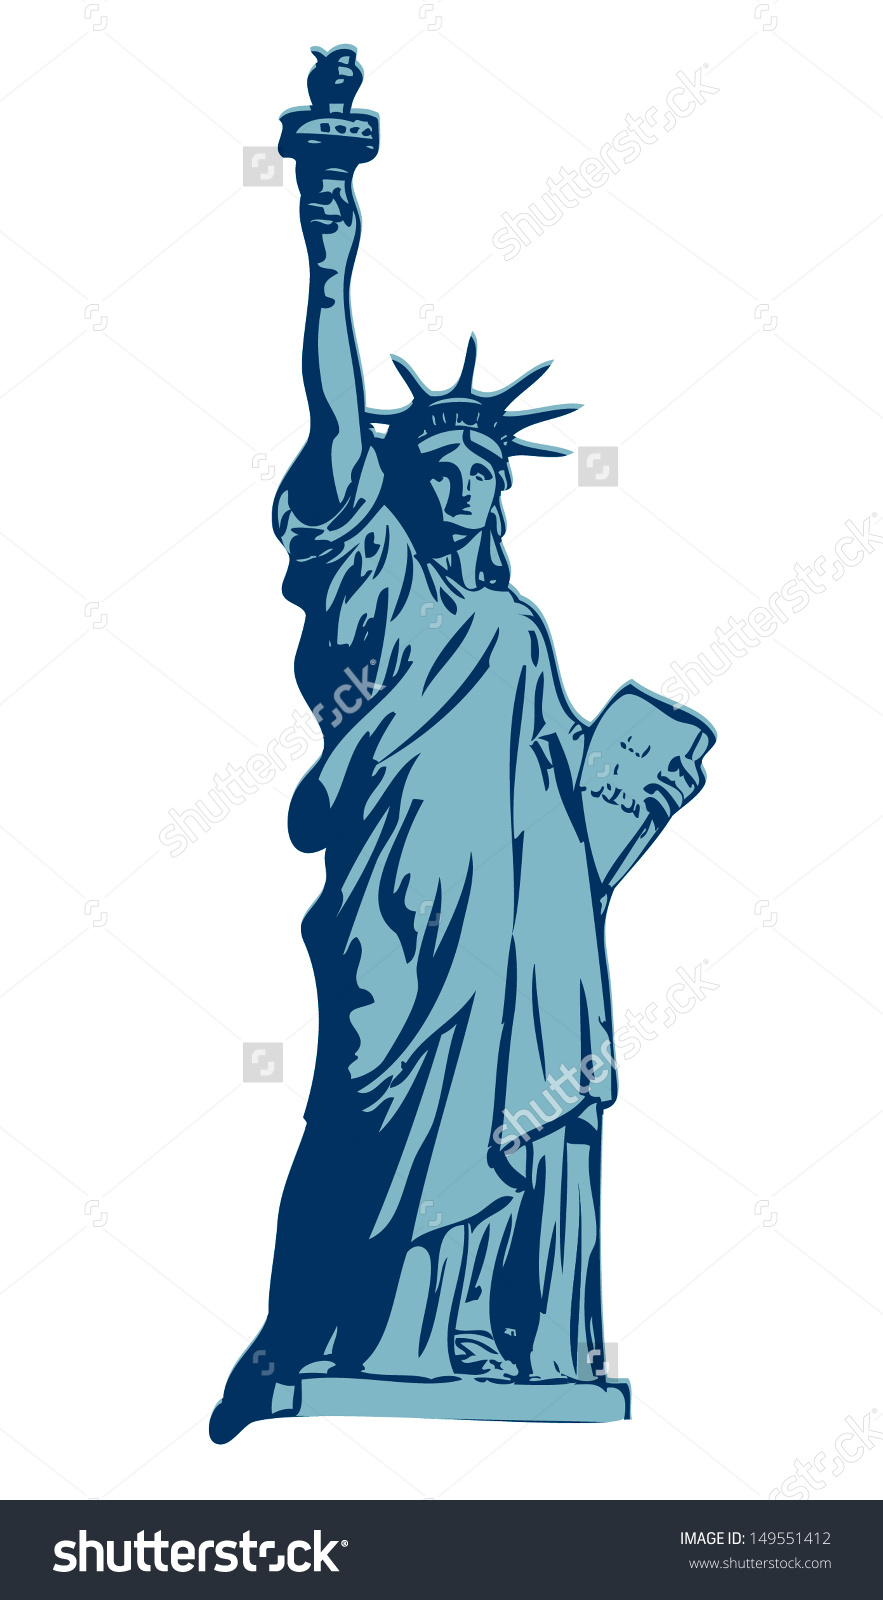 883x1600 Statue Of Liberty Clipart Blue Free Collection Download And